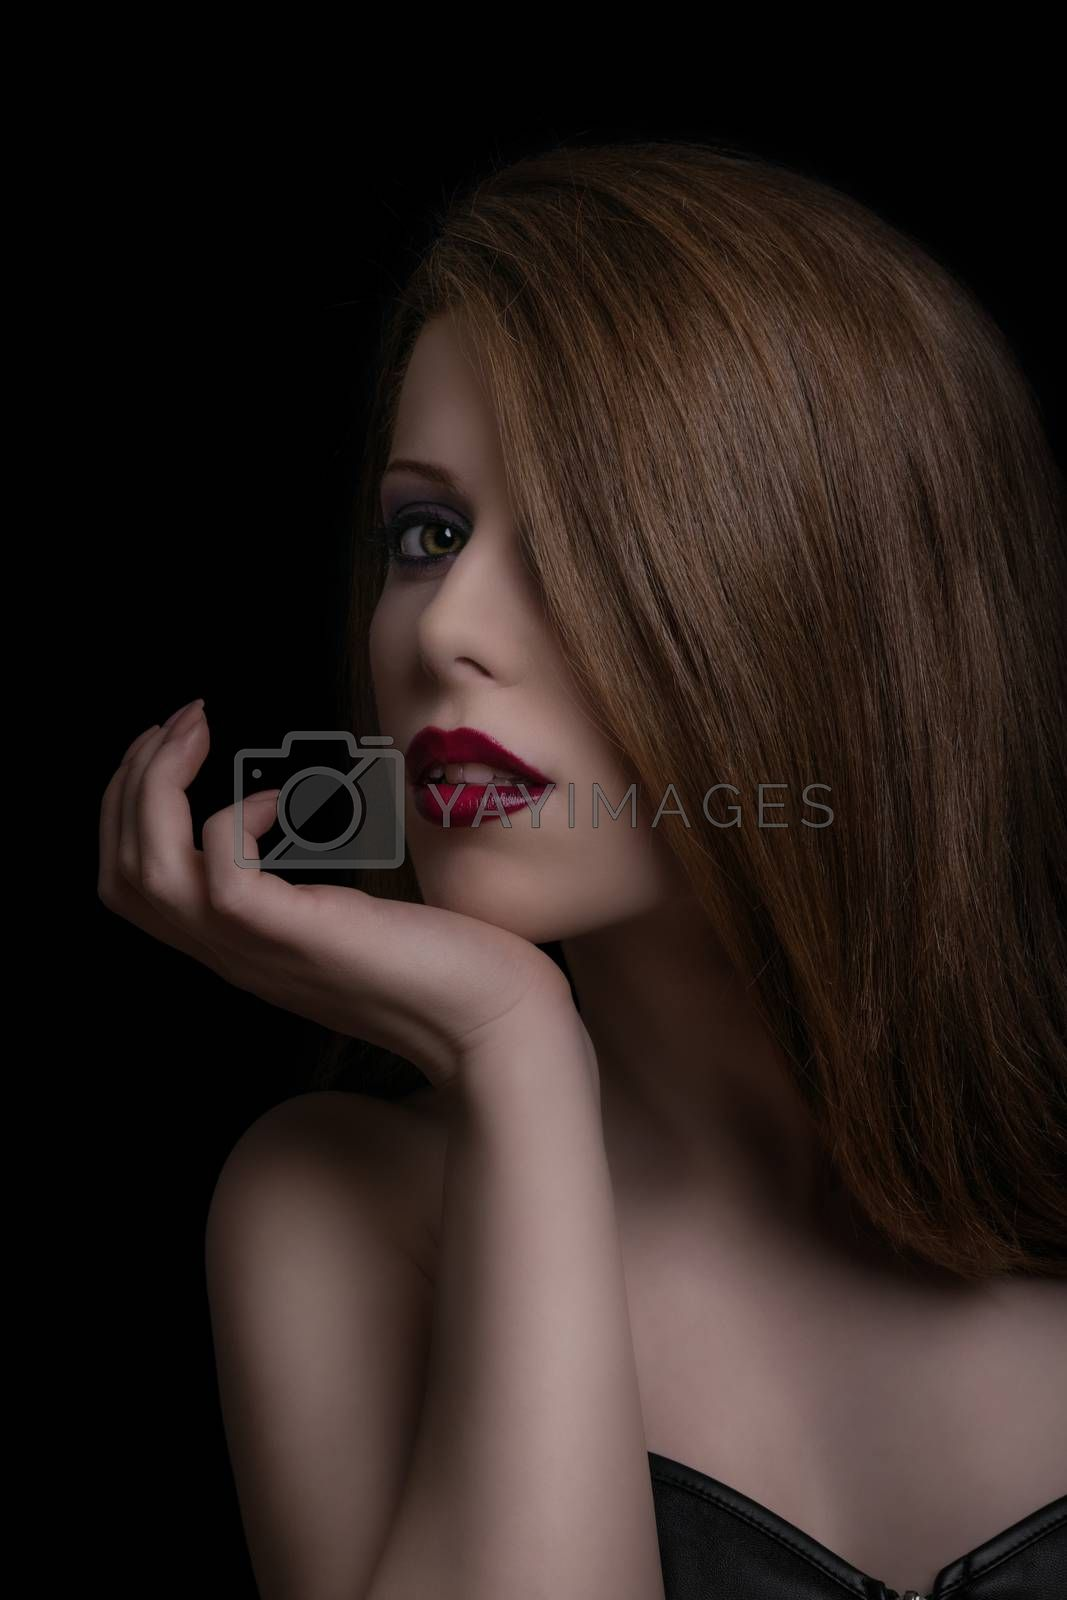 Low key sensual, make up and beauty portrait of a young woman with red lipstick on black background.